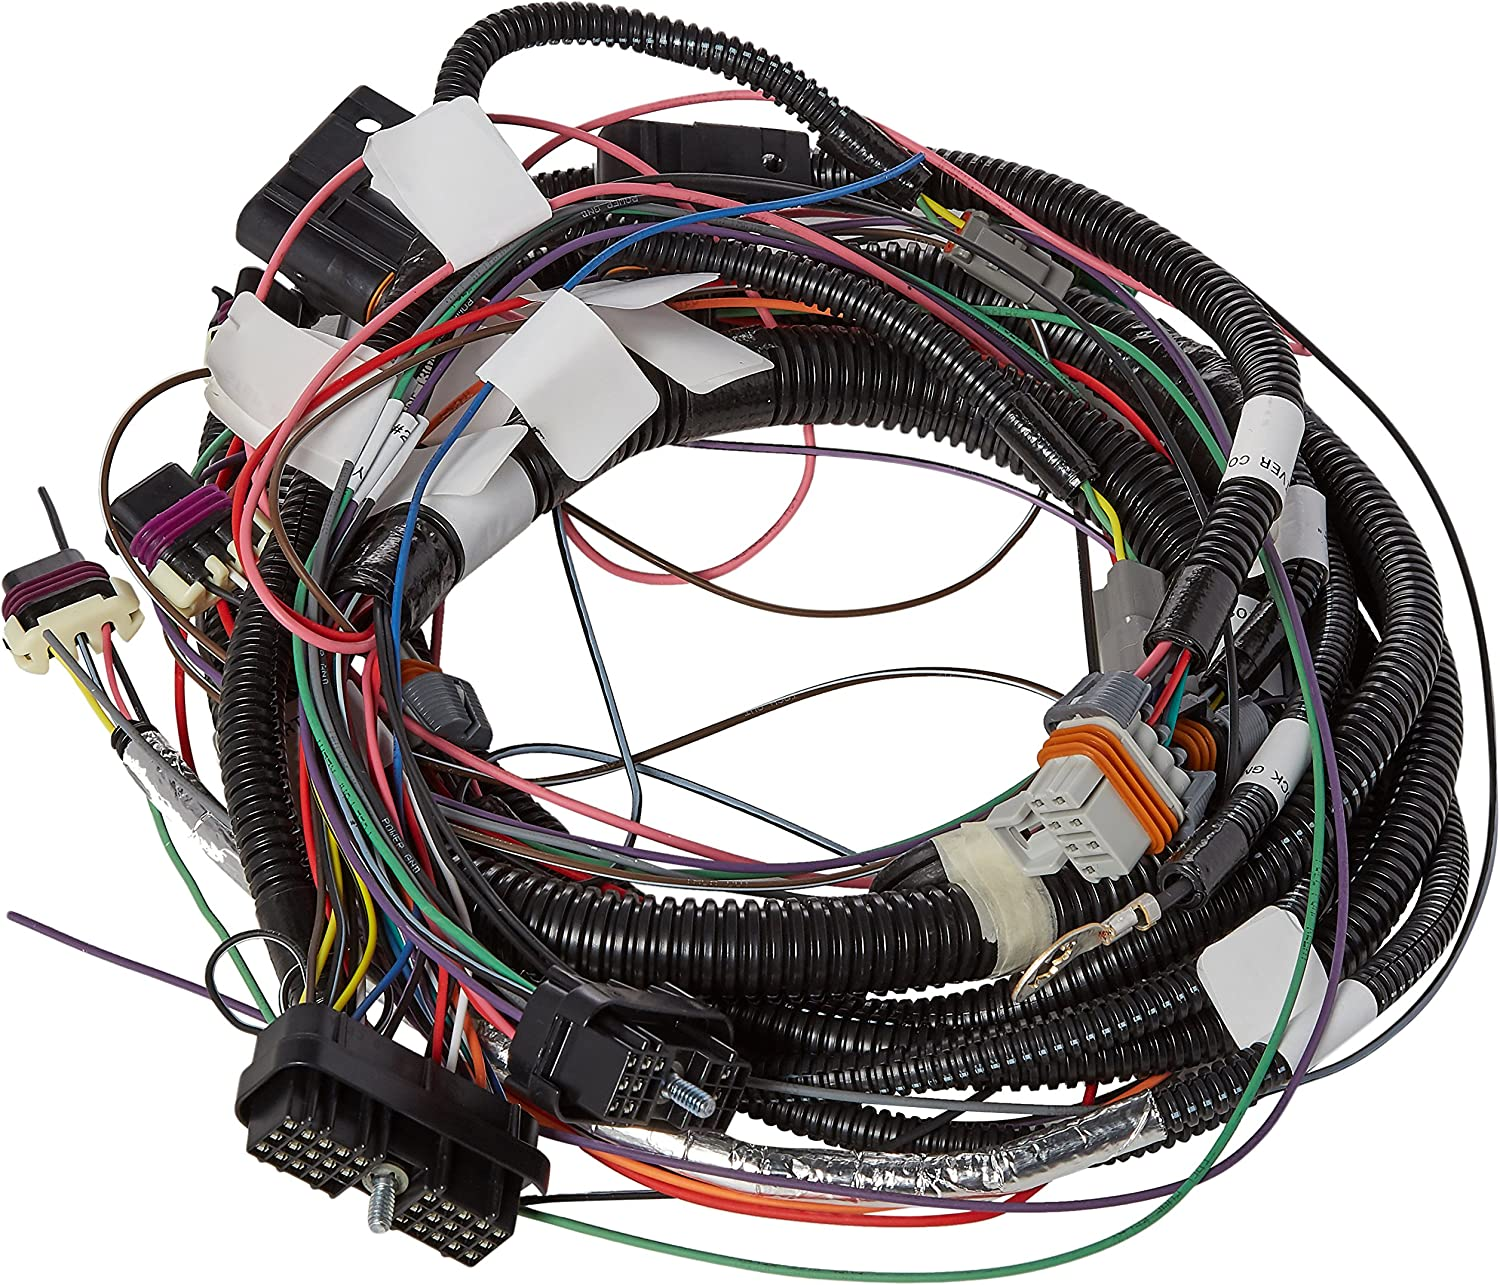 [DIAGRAM_1CA]  Amazon.com: FAST 301972 Wiring Harness for LS1/LS6 XIM: Automotive | Fast Wiring Harness |  | Amazon.com